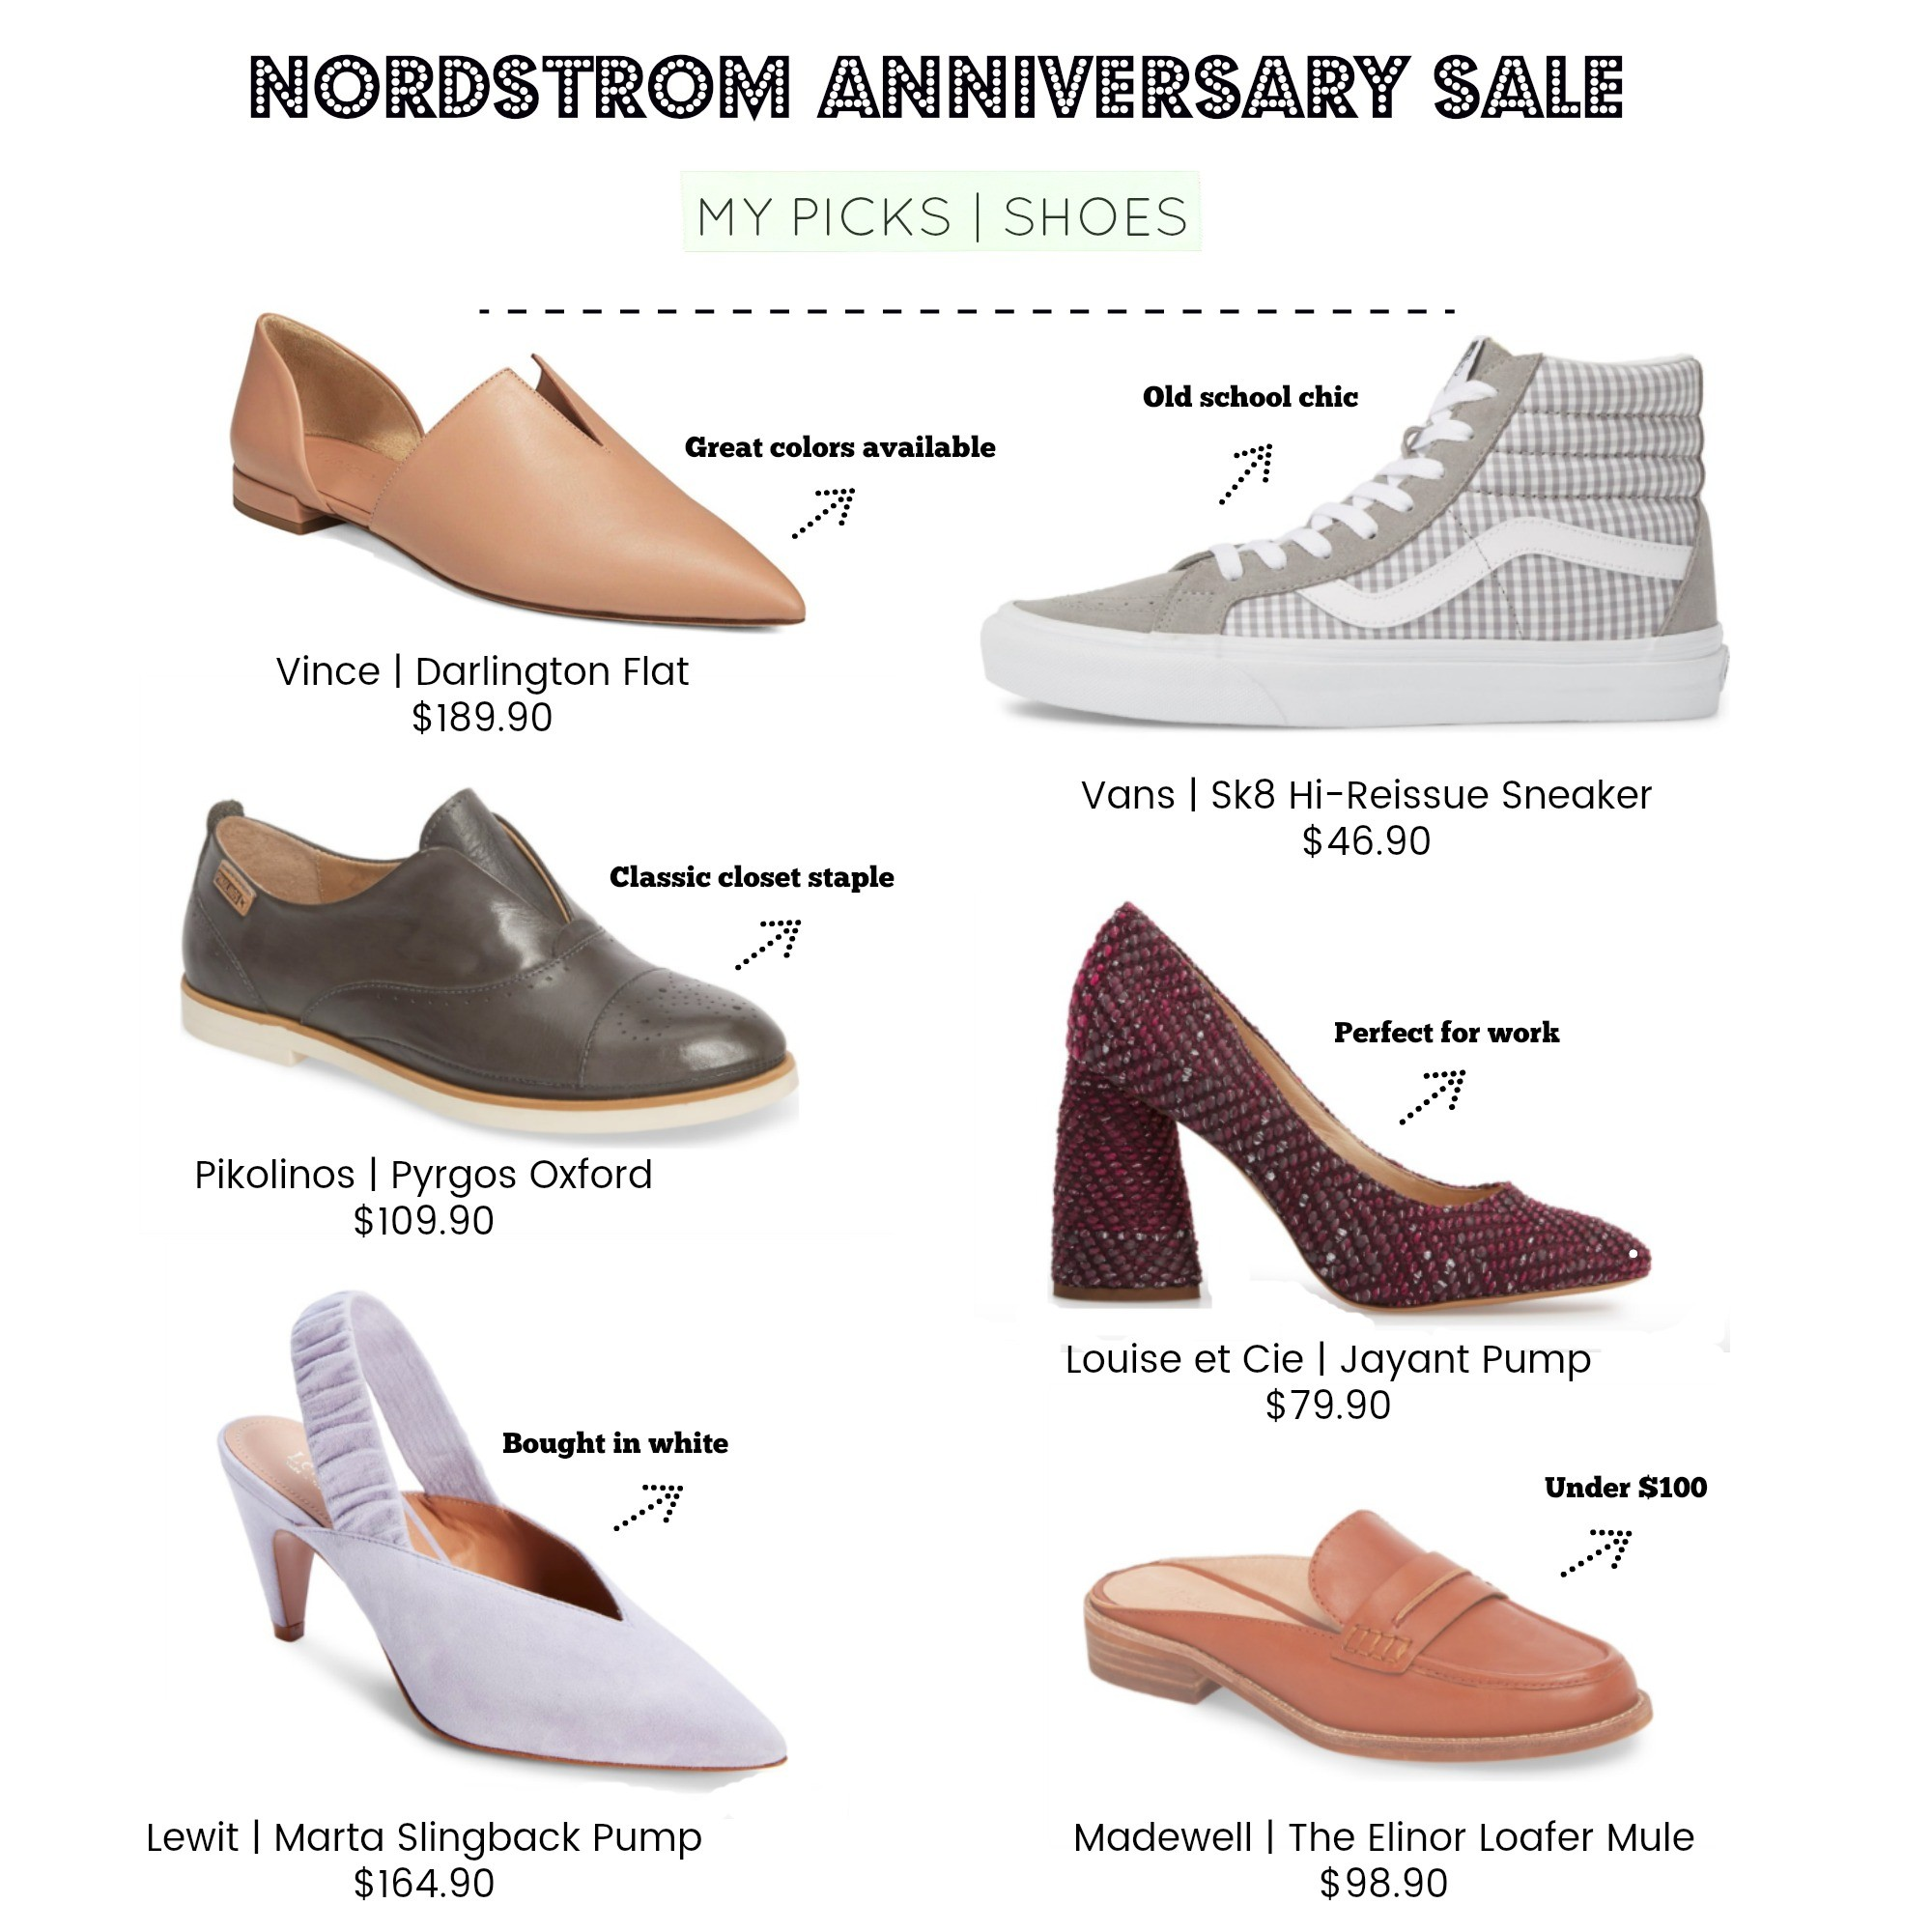 b9a628ccf91 Nordstrom Anniversary Sale  The Shoes – Los Angeles Travel and ...